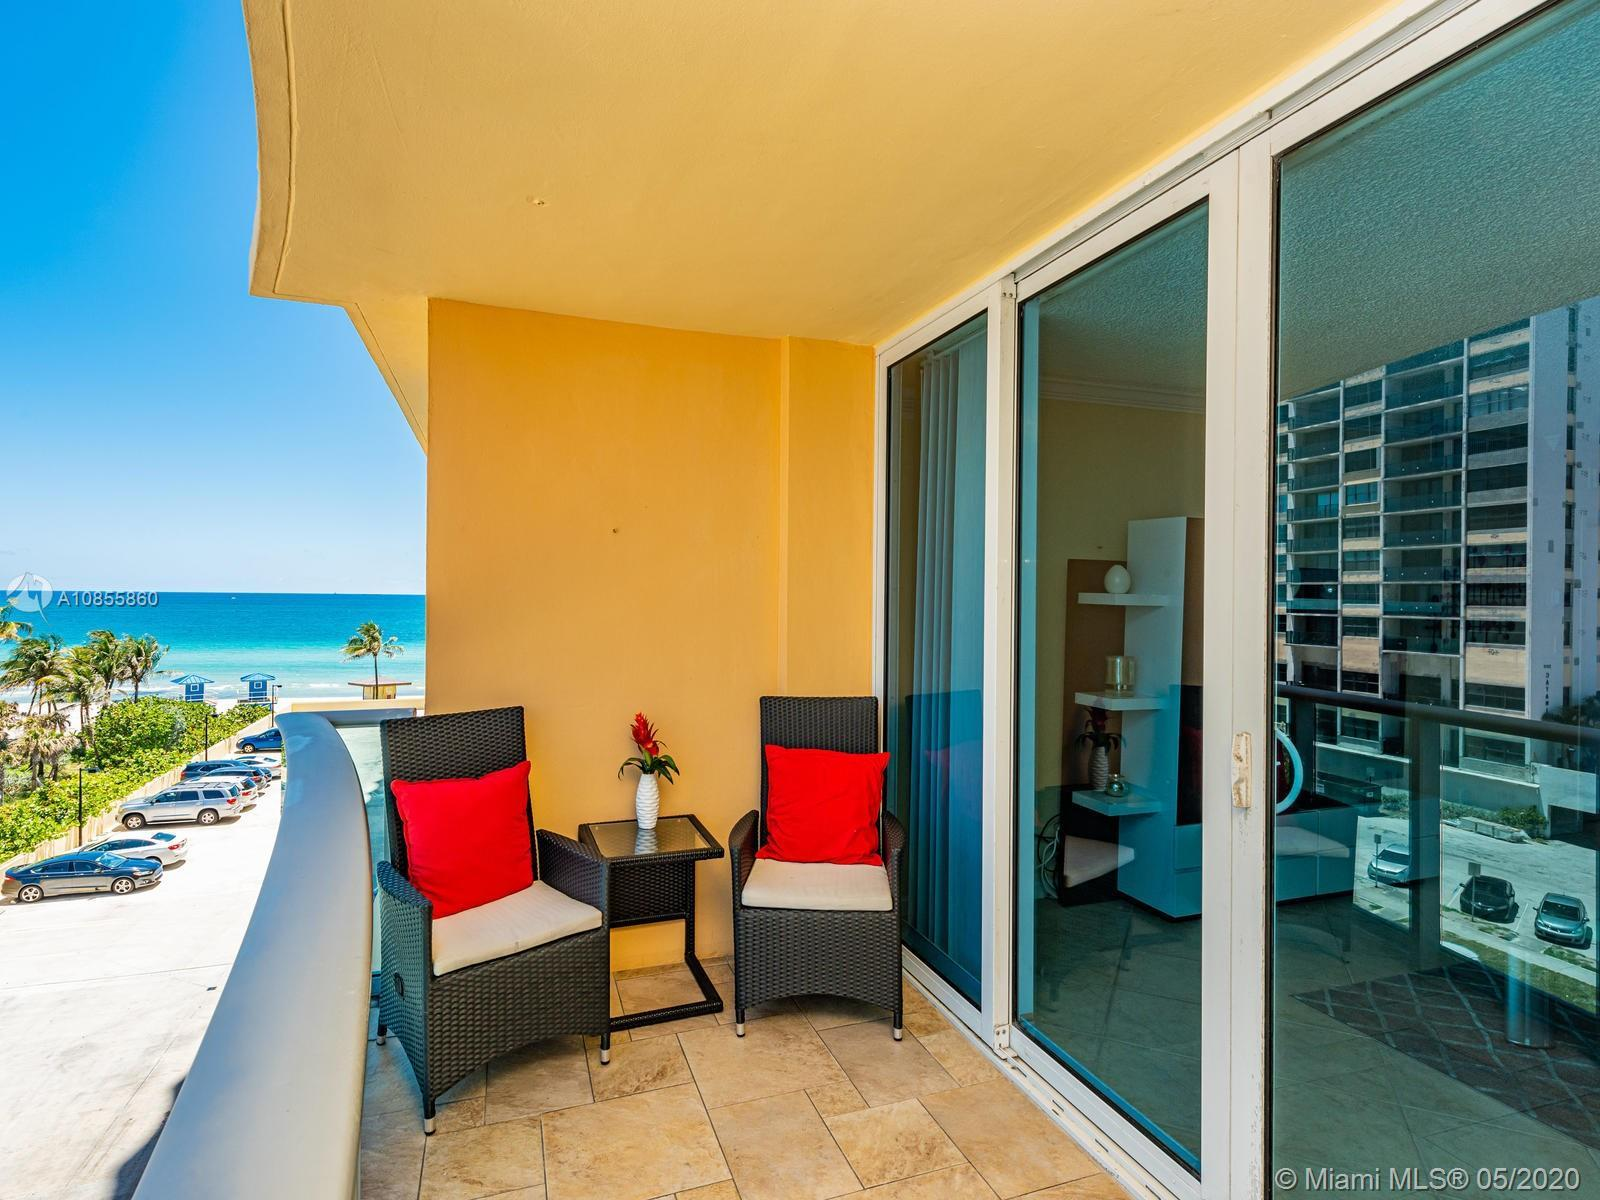 Great opportunity to own this bright and spacious condo with breathtaking ocean and city views. Full